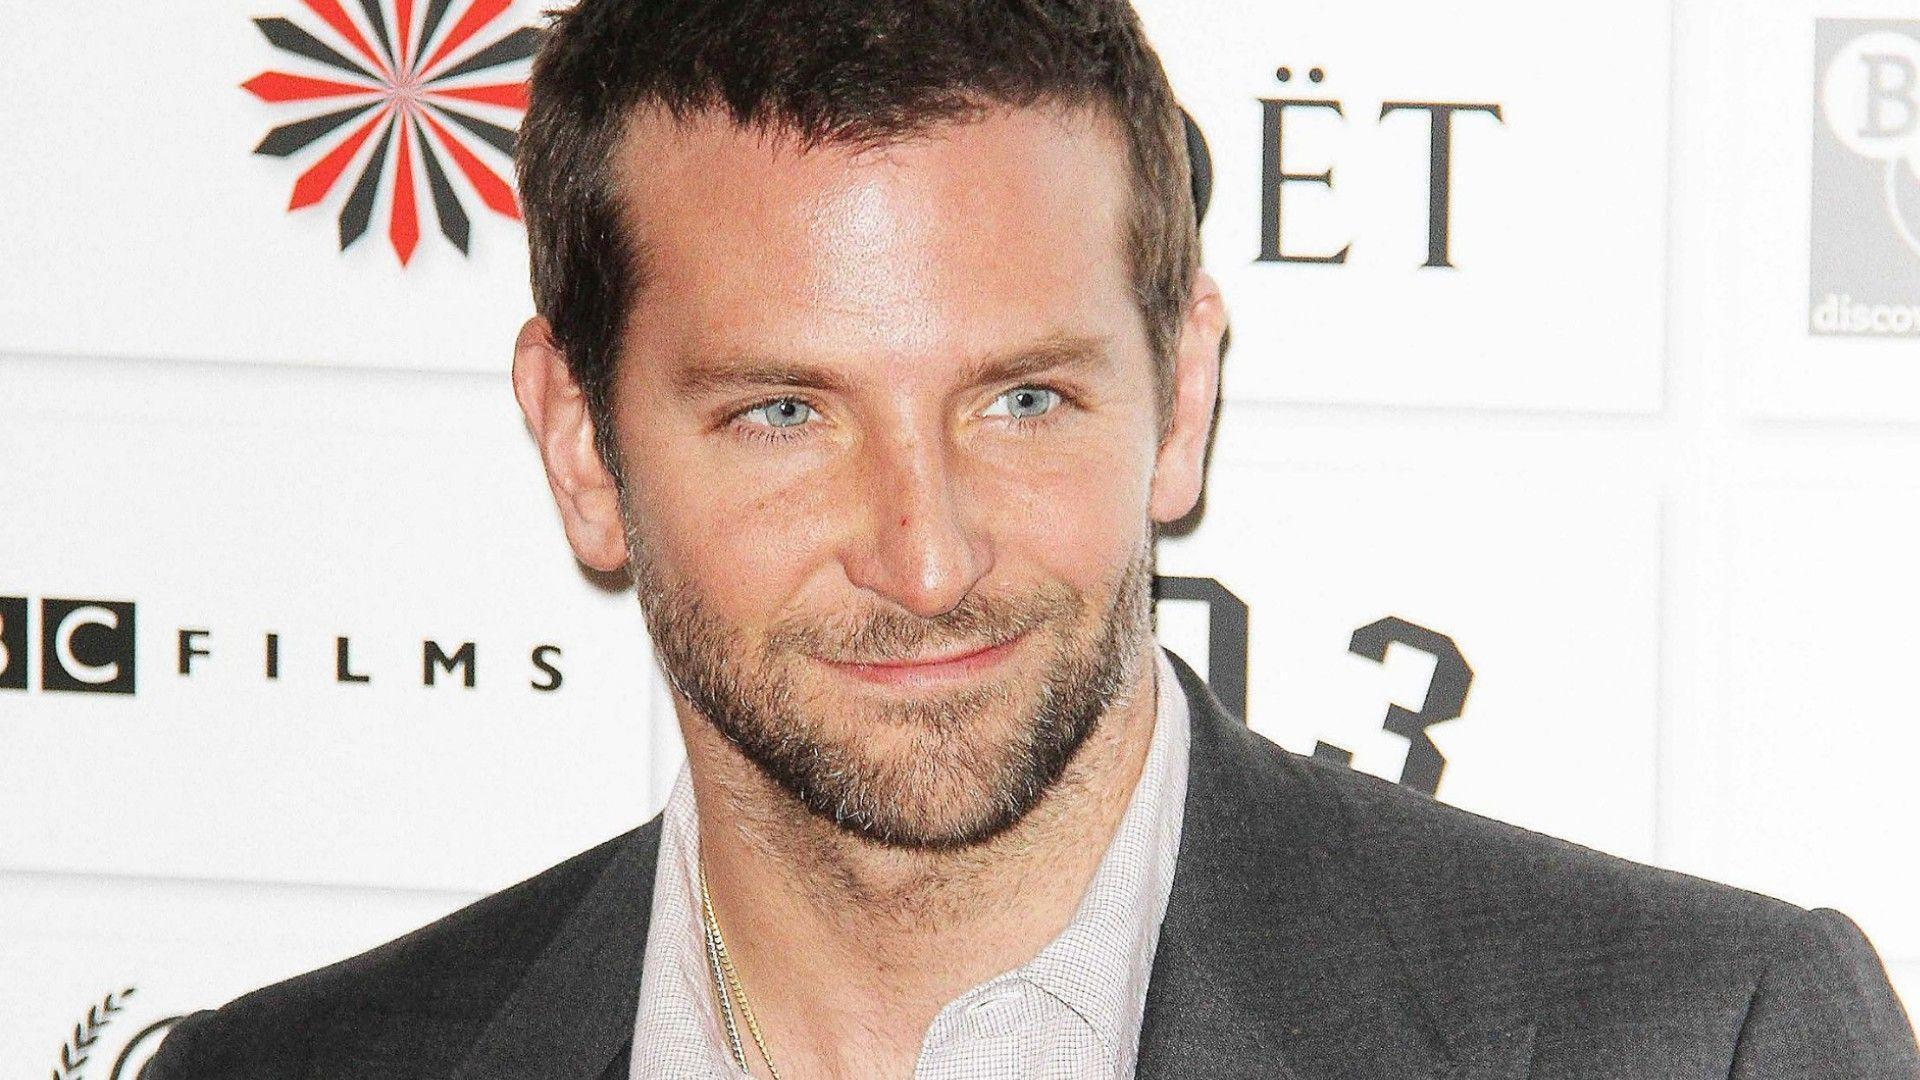 Bradley Cooper Wallpapers 1920x1080